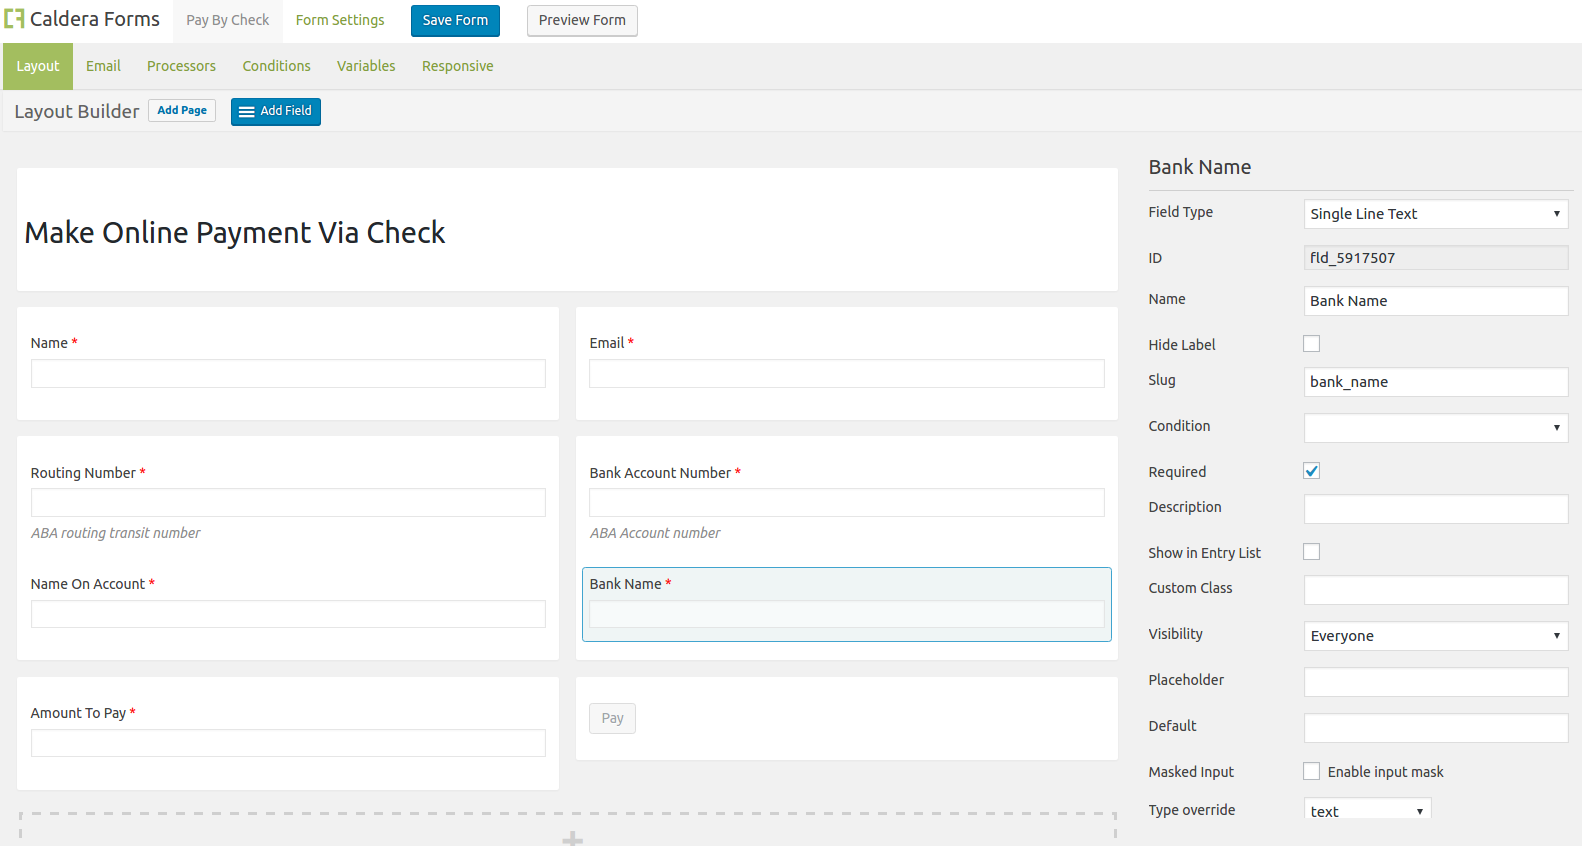 The form layout created using using Caldera Forms for Authorize.net eCheck template